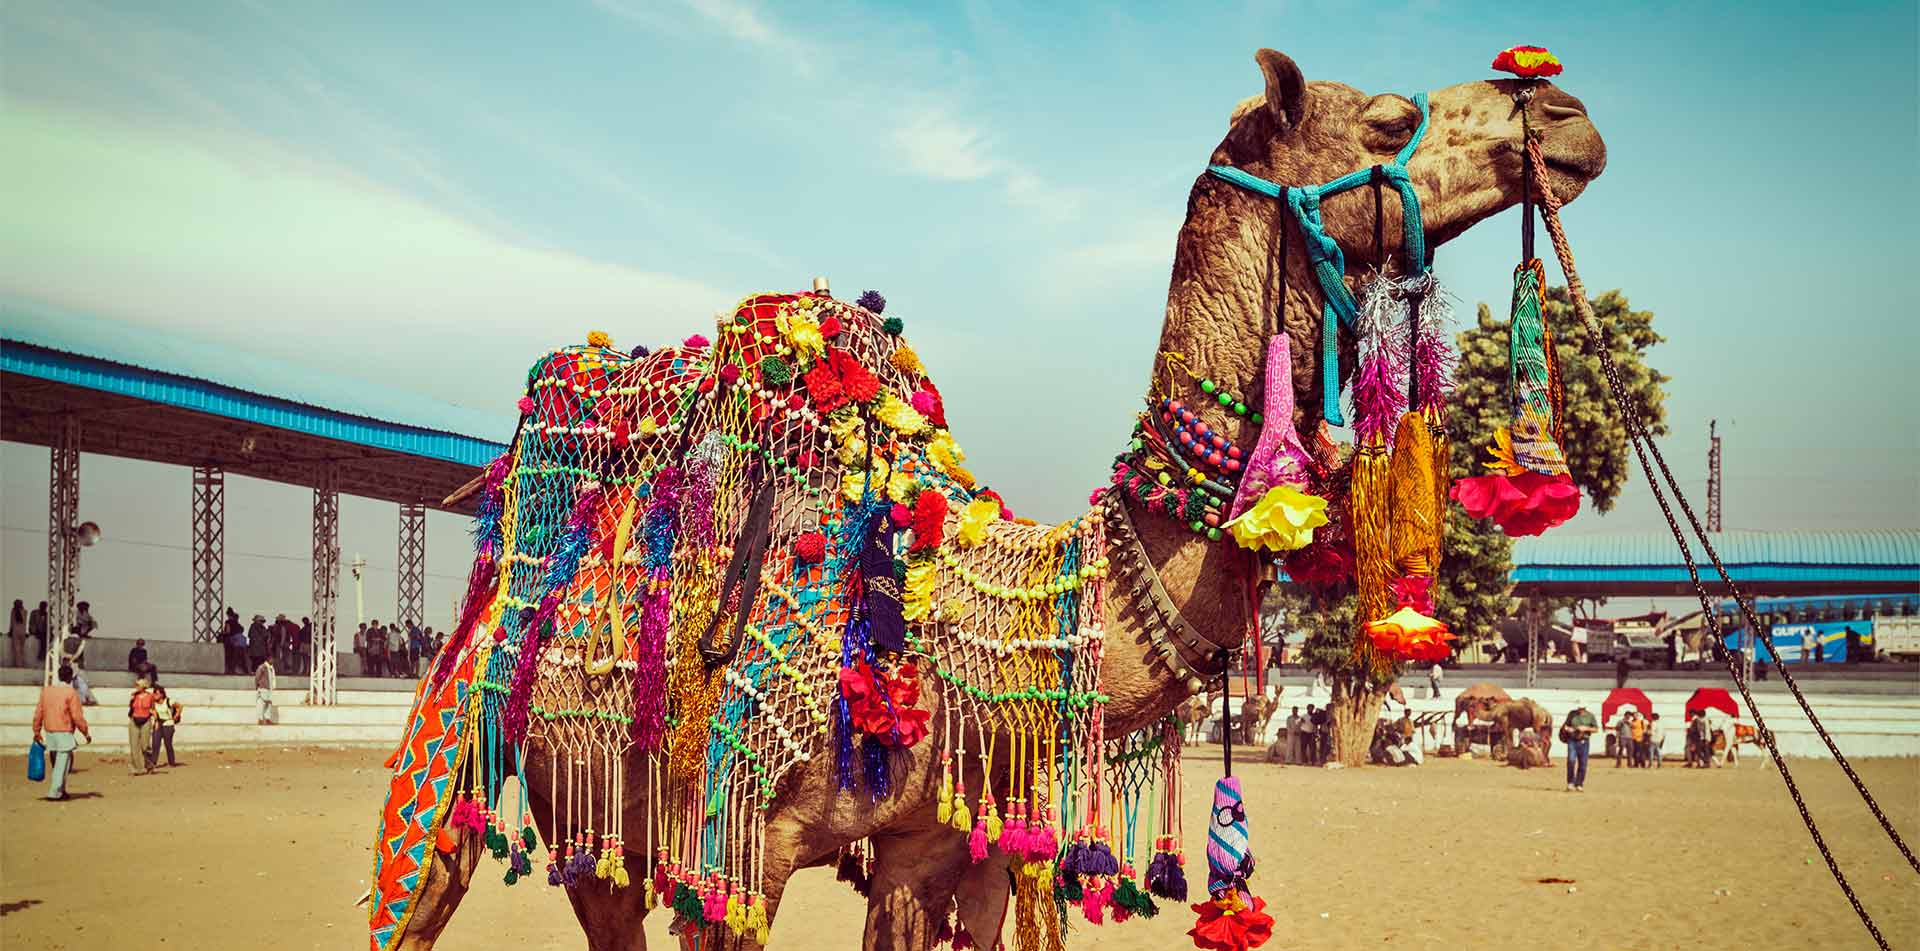 Asia India Rajasthan camel decorated for the Pushkar Camel Fair - luxury vacation destinations